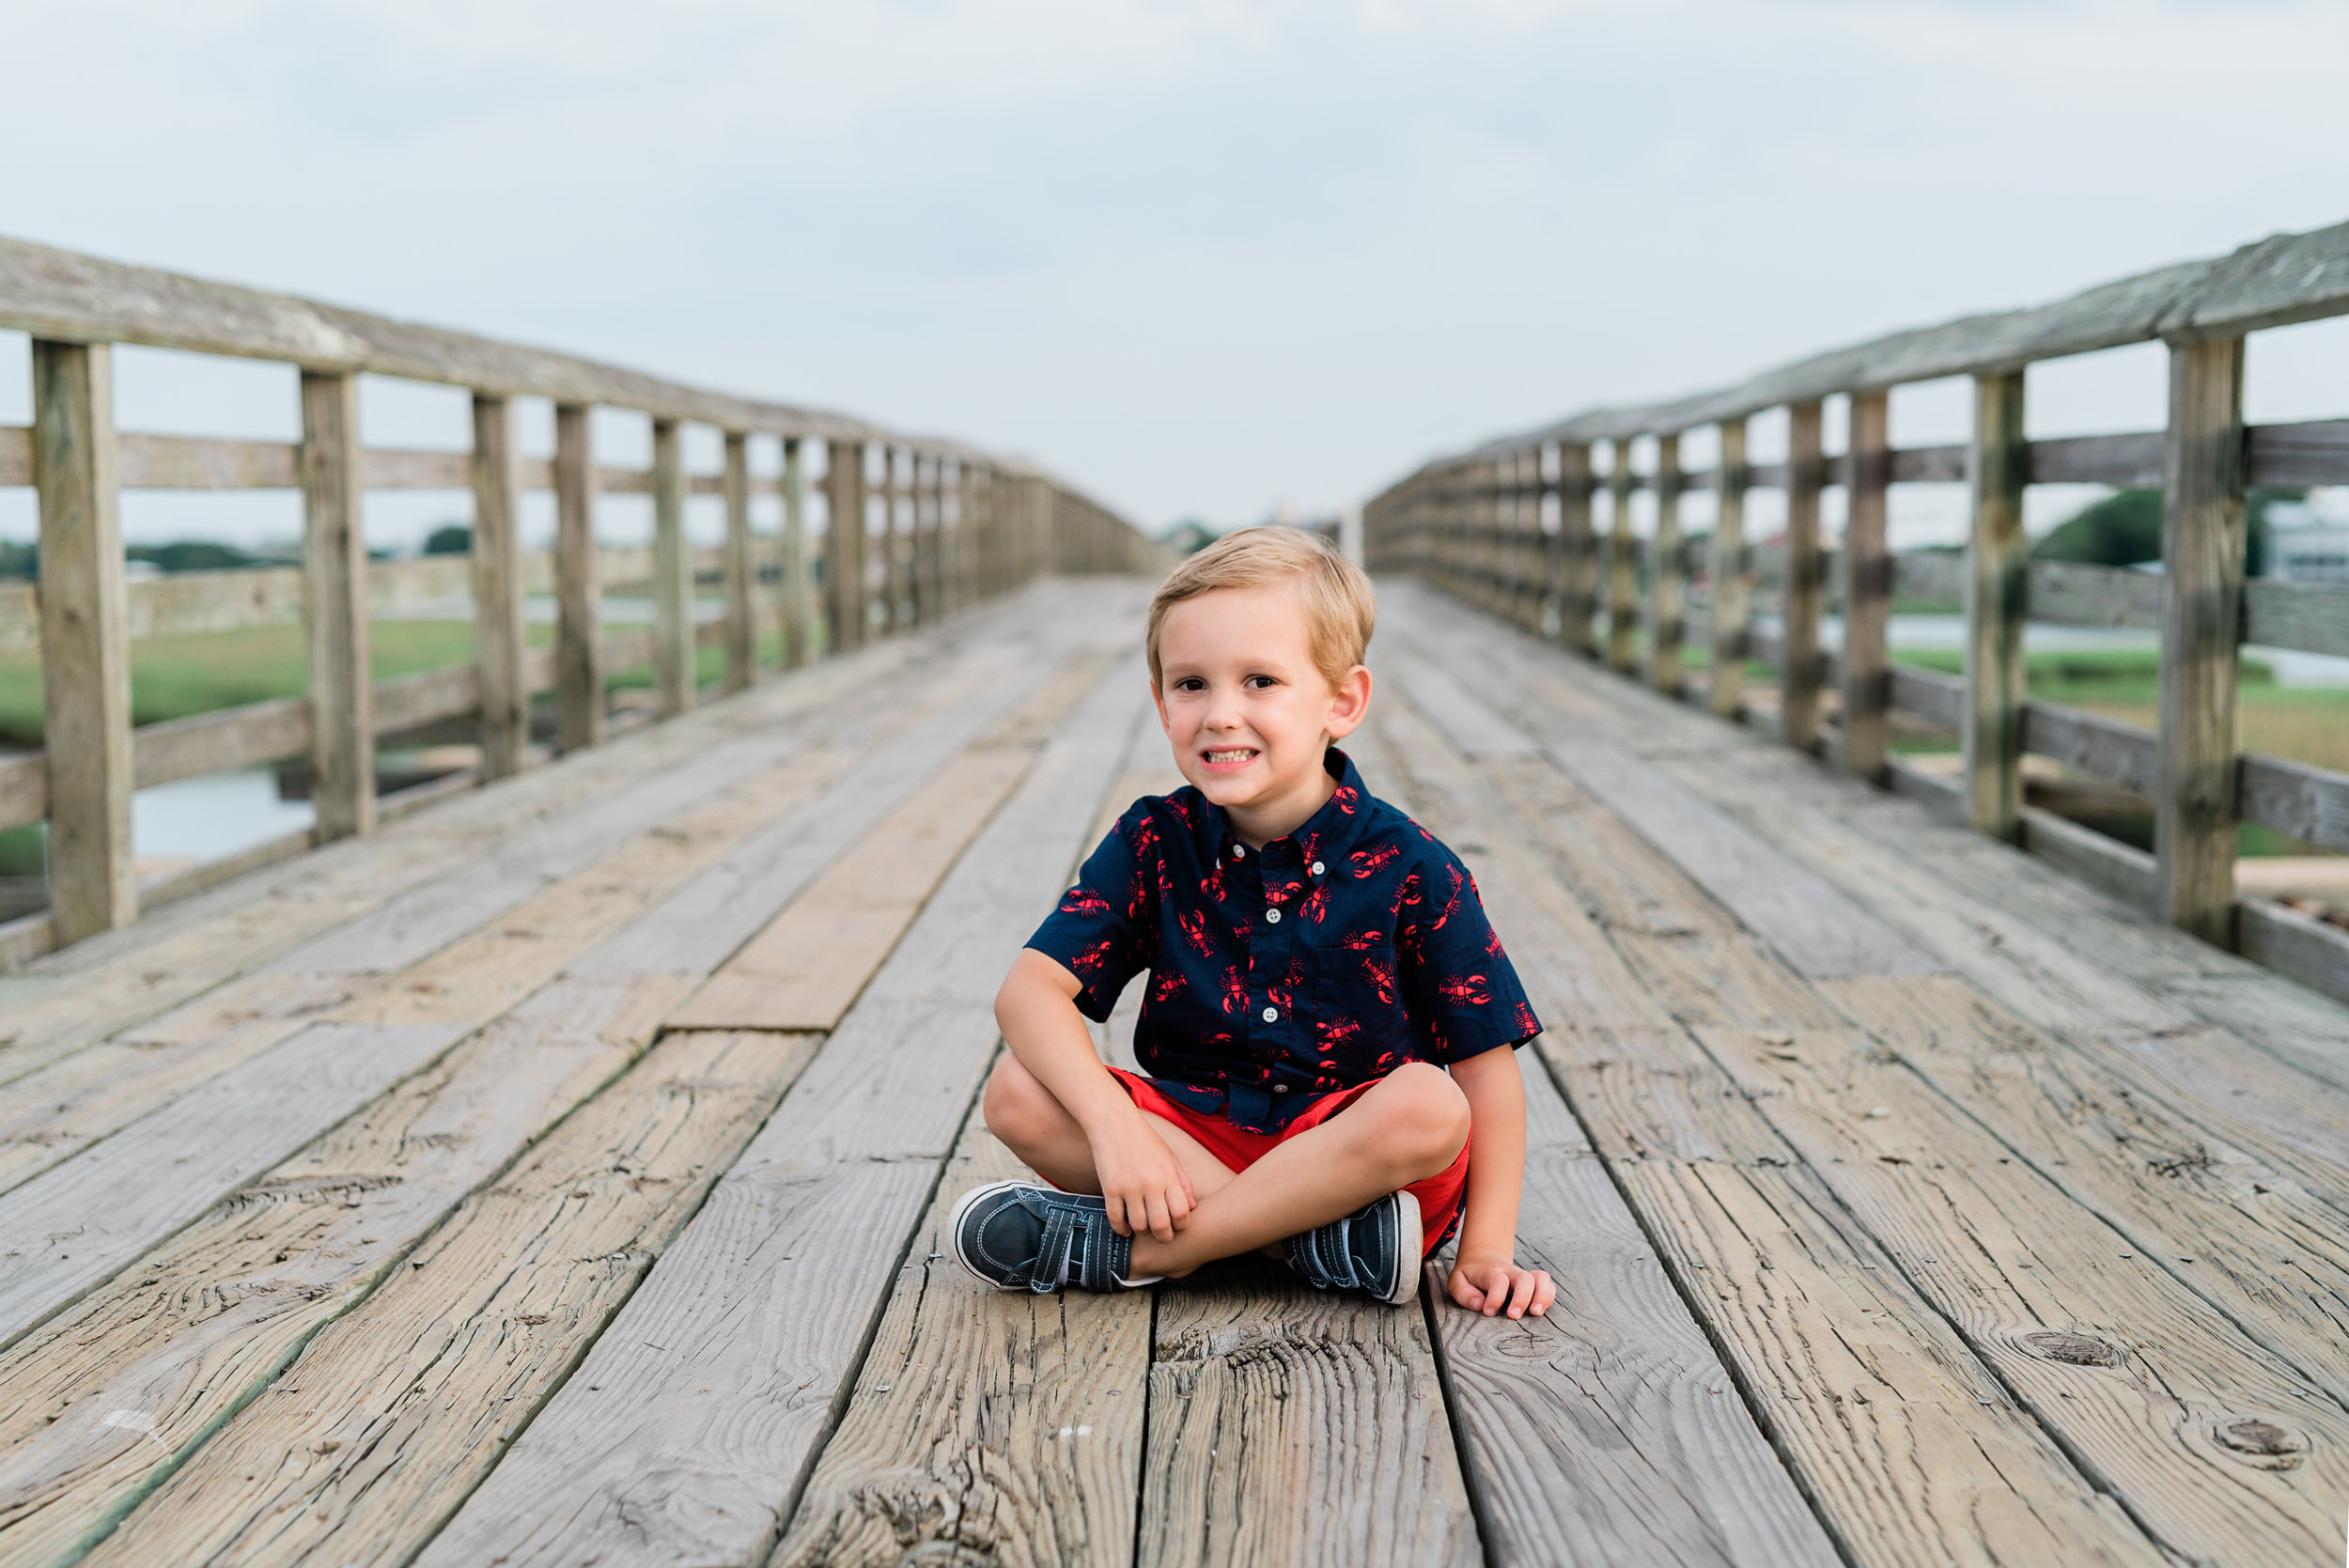 Charleston-Lifestyle-Family-Photographer-Following-Seas-Photography-2542 copy.jpg